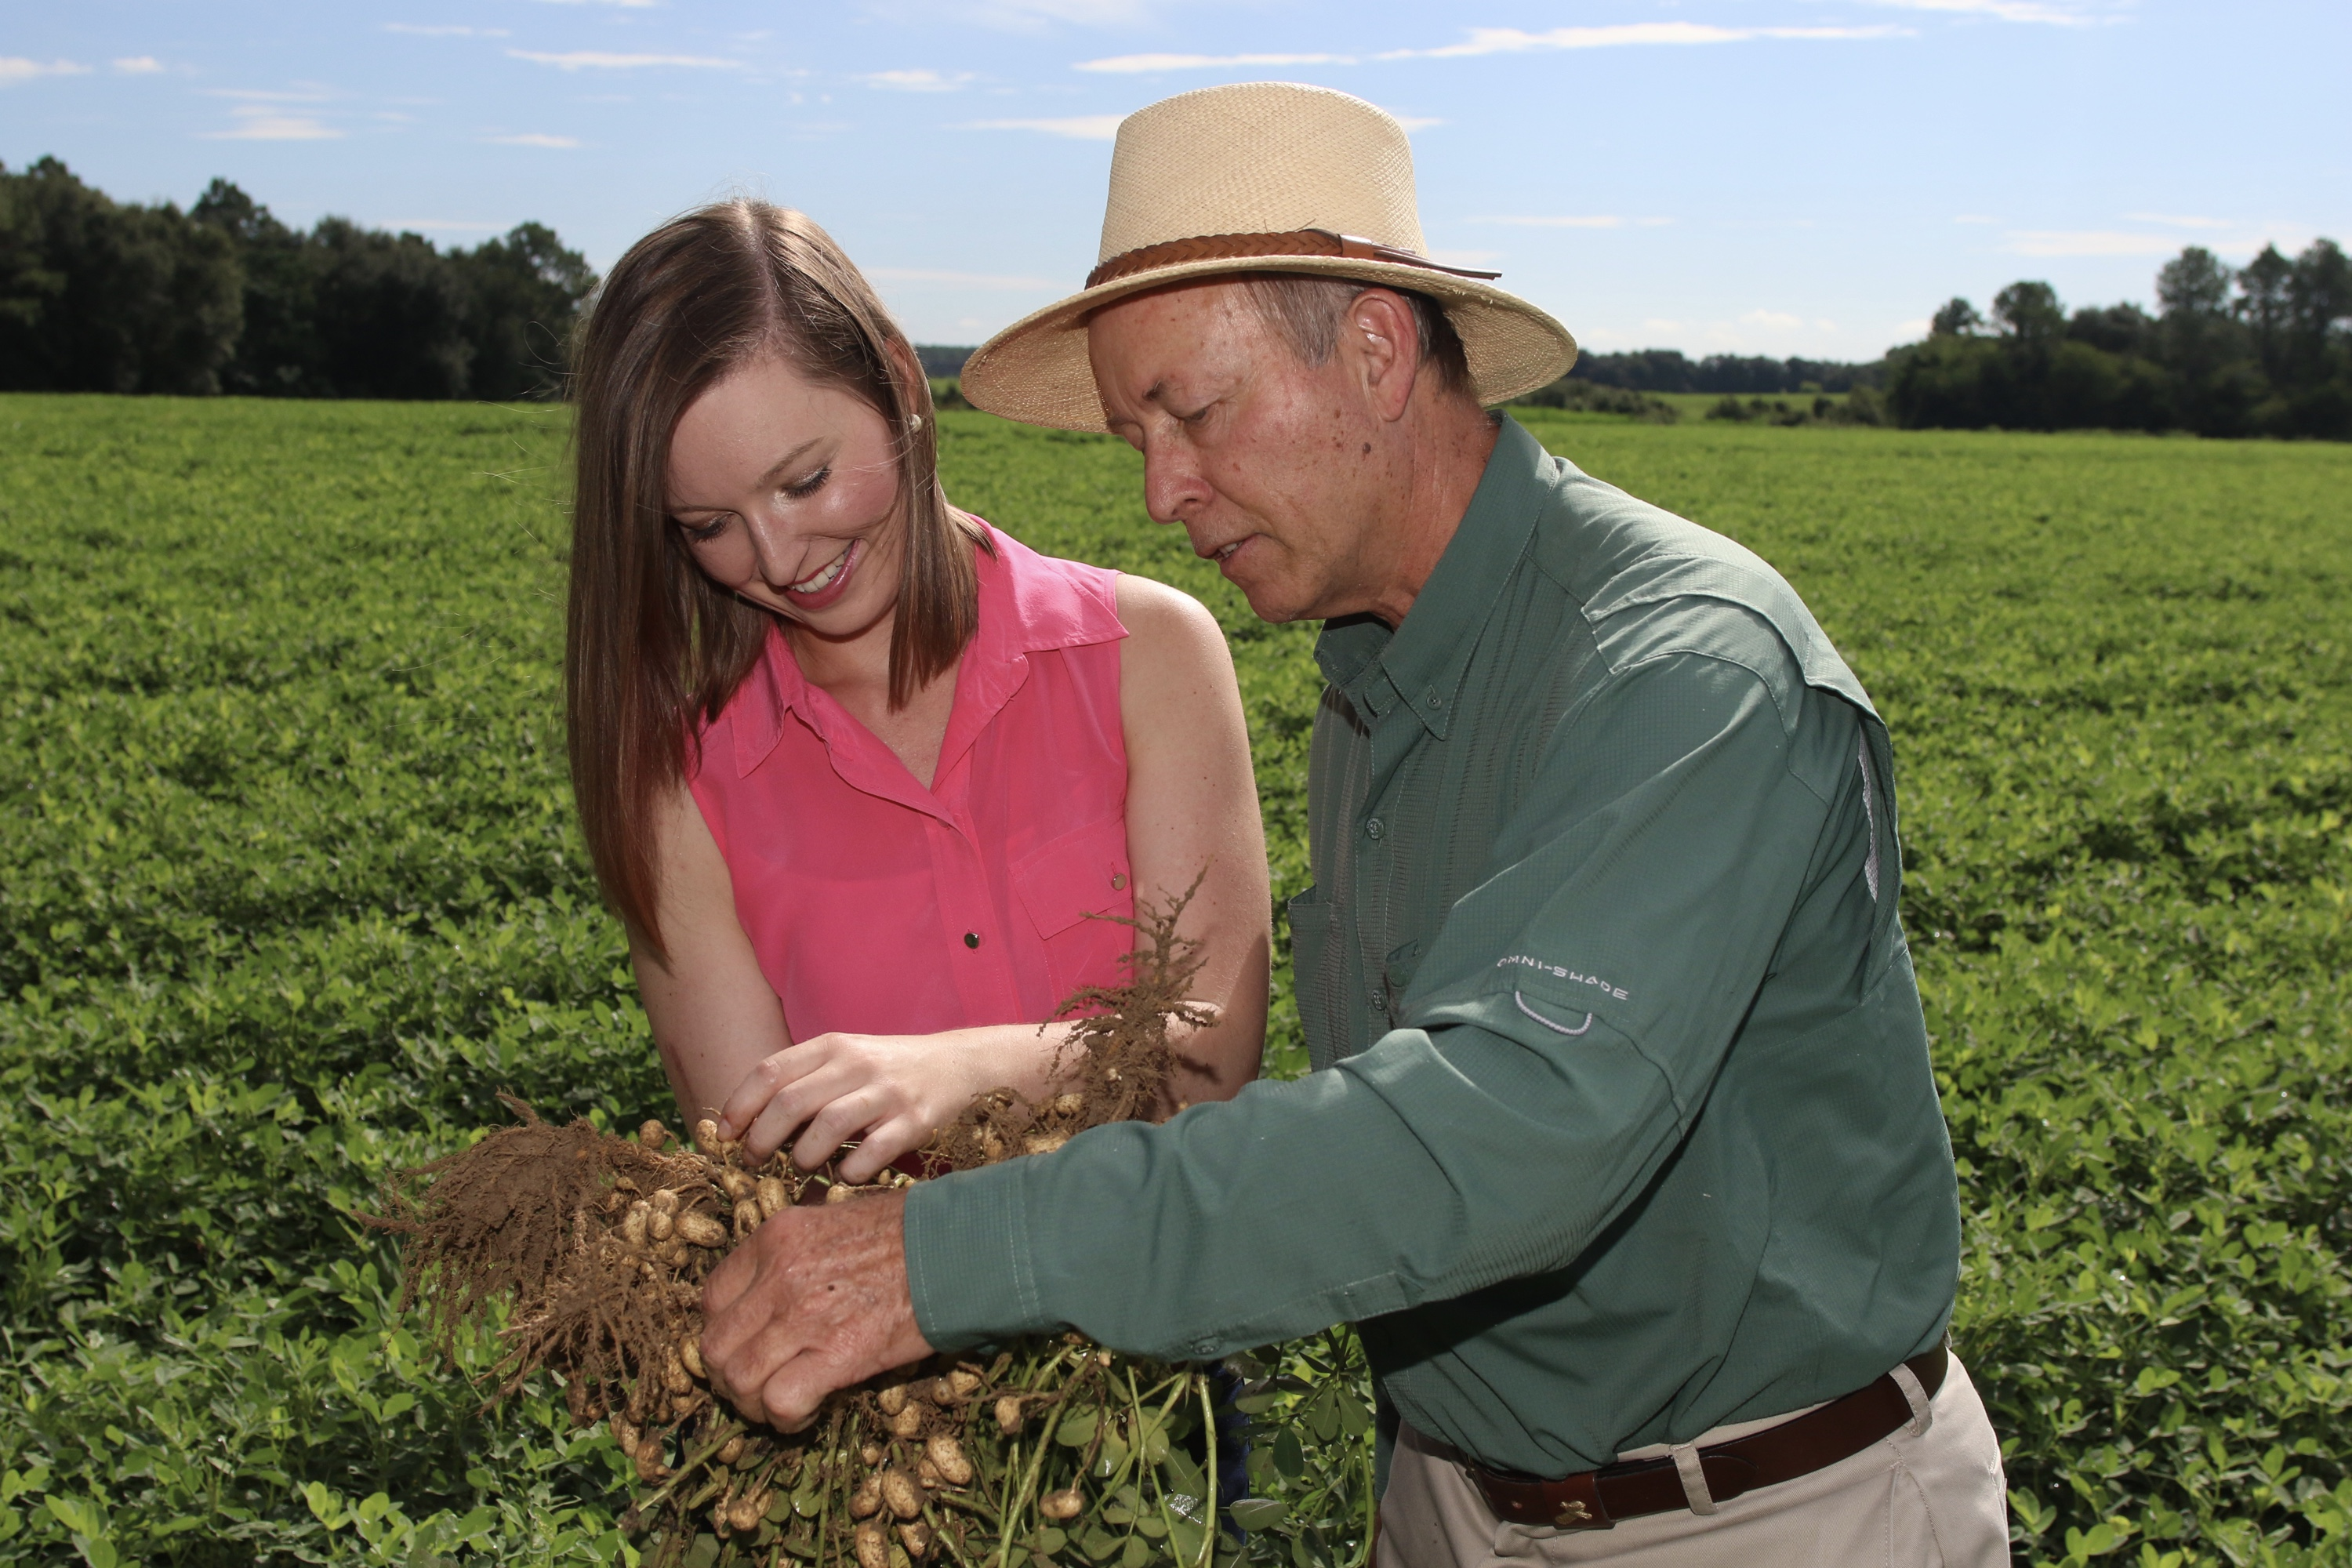 Casey Cox and her father, Glenn, on their family farm in South Georgia. Casey is smiling and touching a bunch of legumes her father is holding.